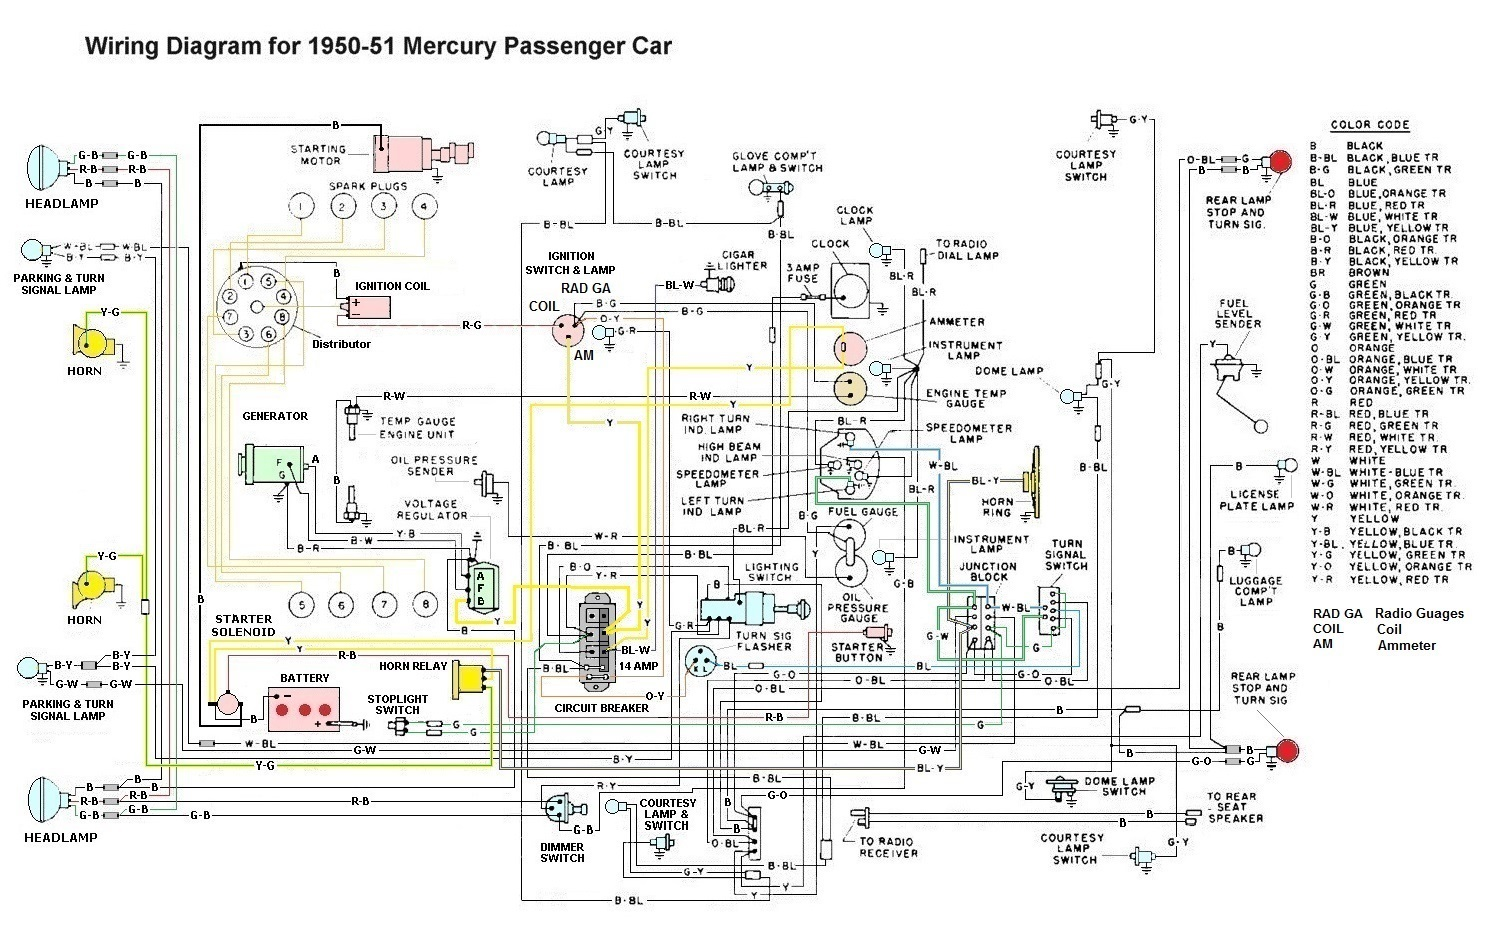 1951 mercury wiring diagram read all wiring diagram 1951 Ferrari 375